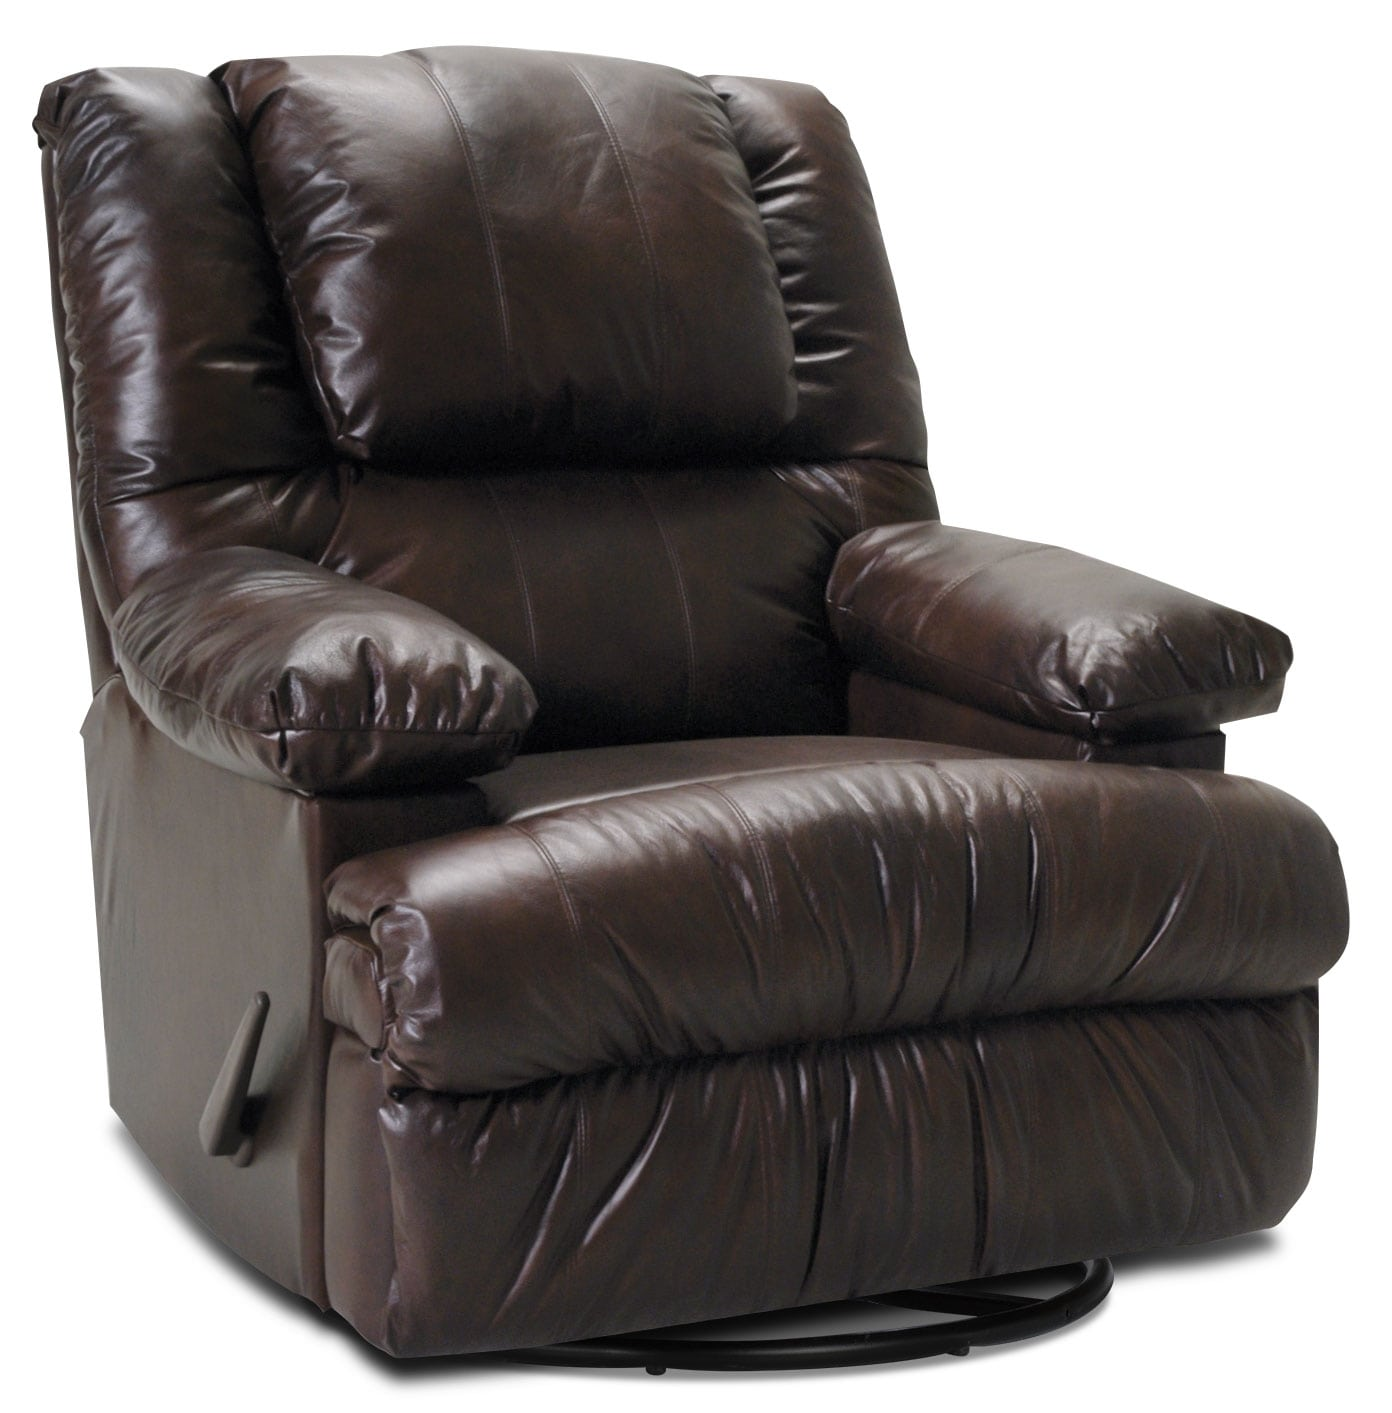 Living Room Furniture - Designed2B Recliner 5598 Genuine Leather Swivel Rocker with Storage Arms - Chocolate